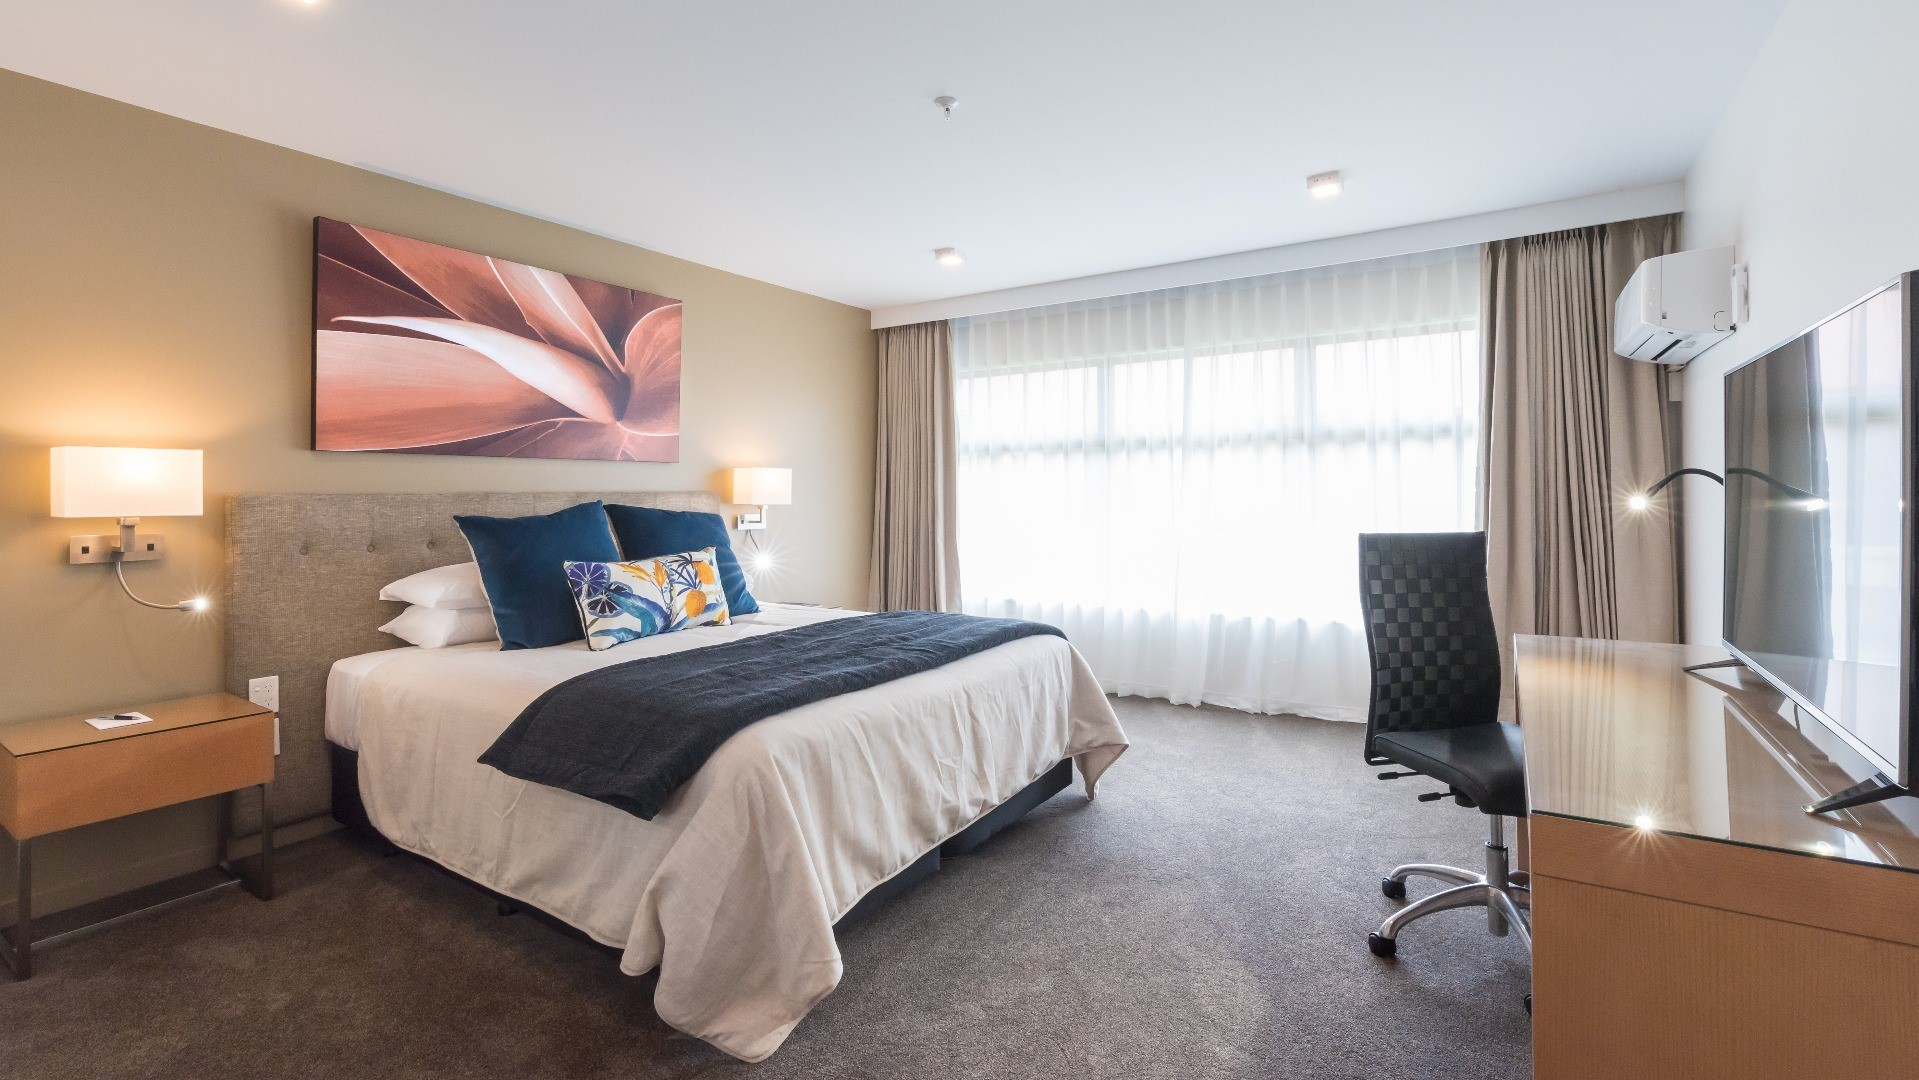 New Rooms and Suites at Distinction Hamilton Hotel